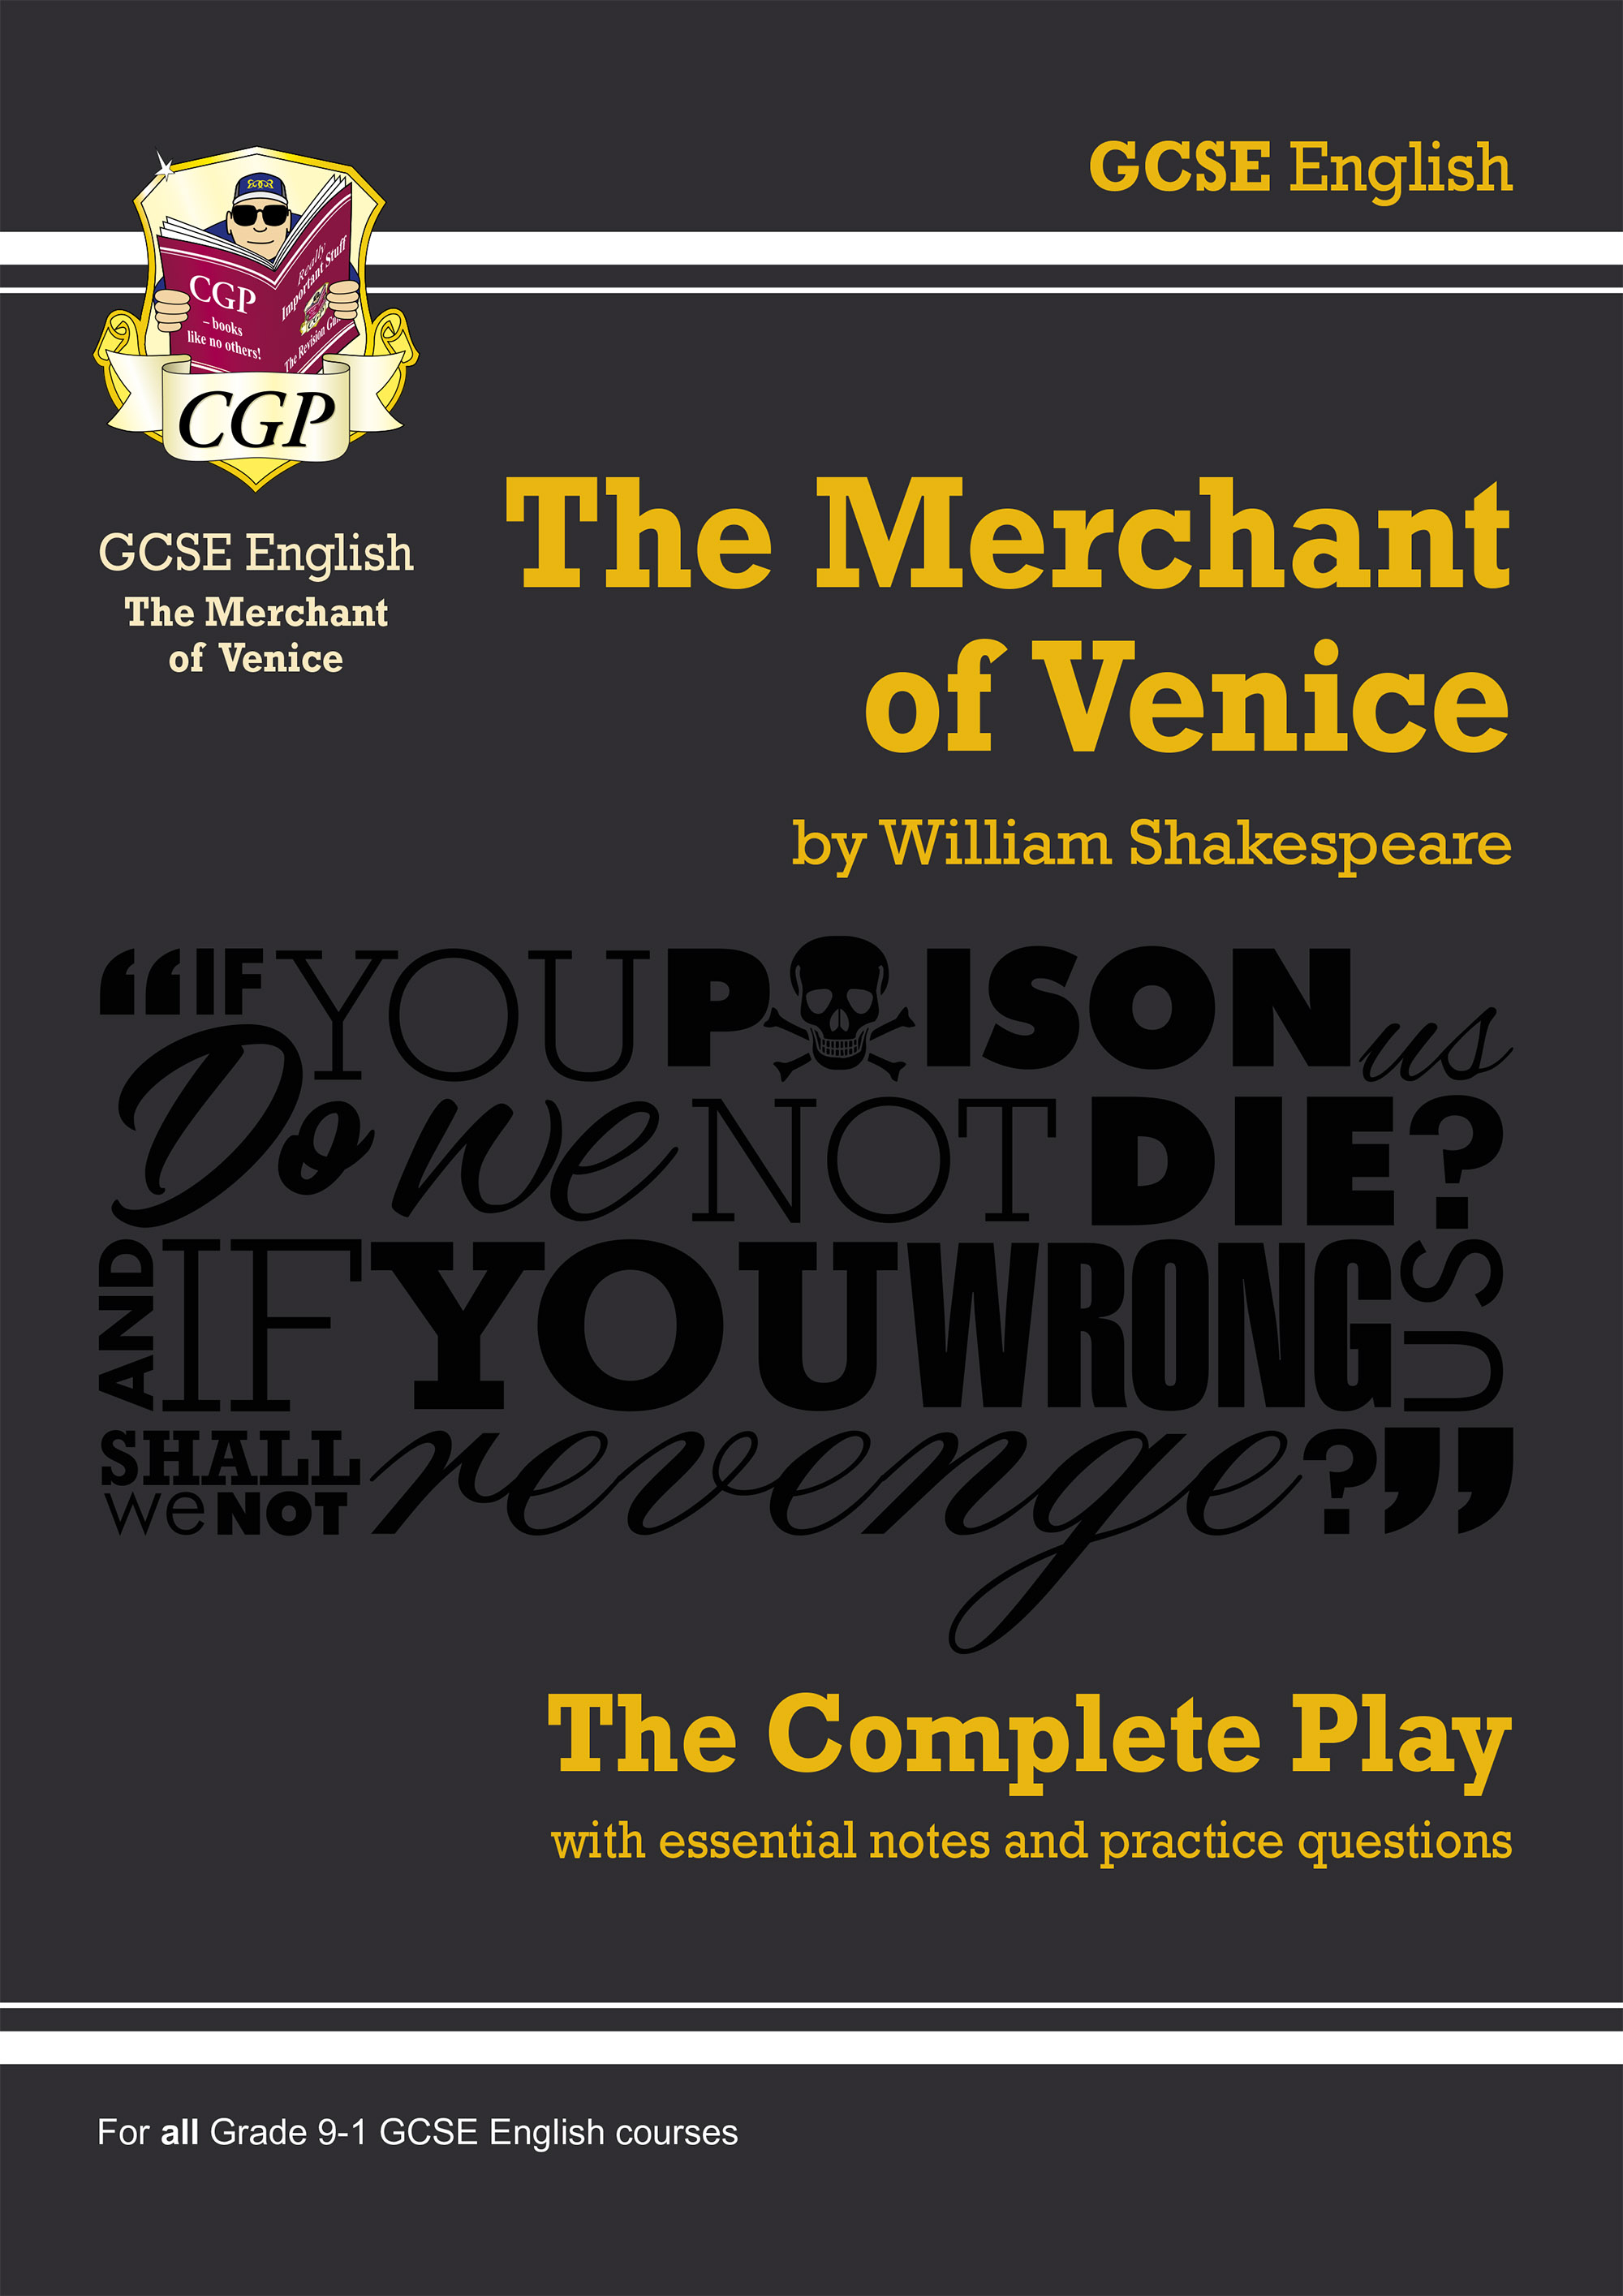 EPMV41DK - Grade 9-1 GCSE English The Merchant of Venice - The Complete Play